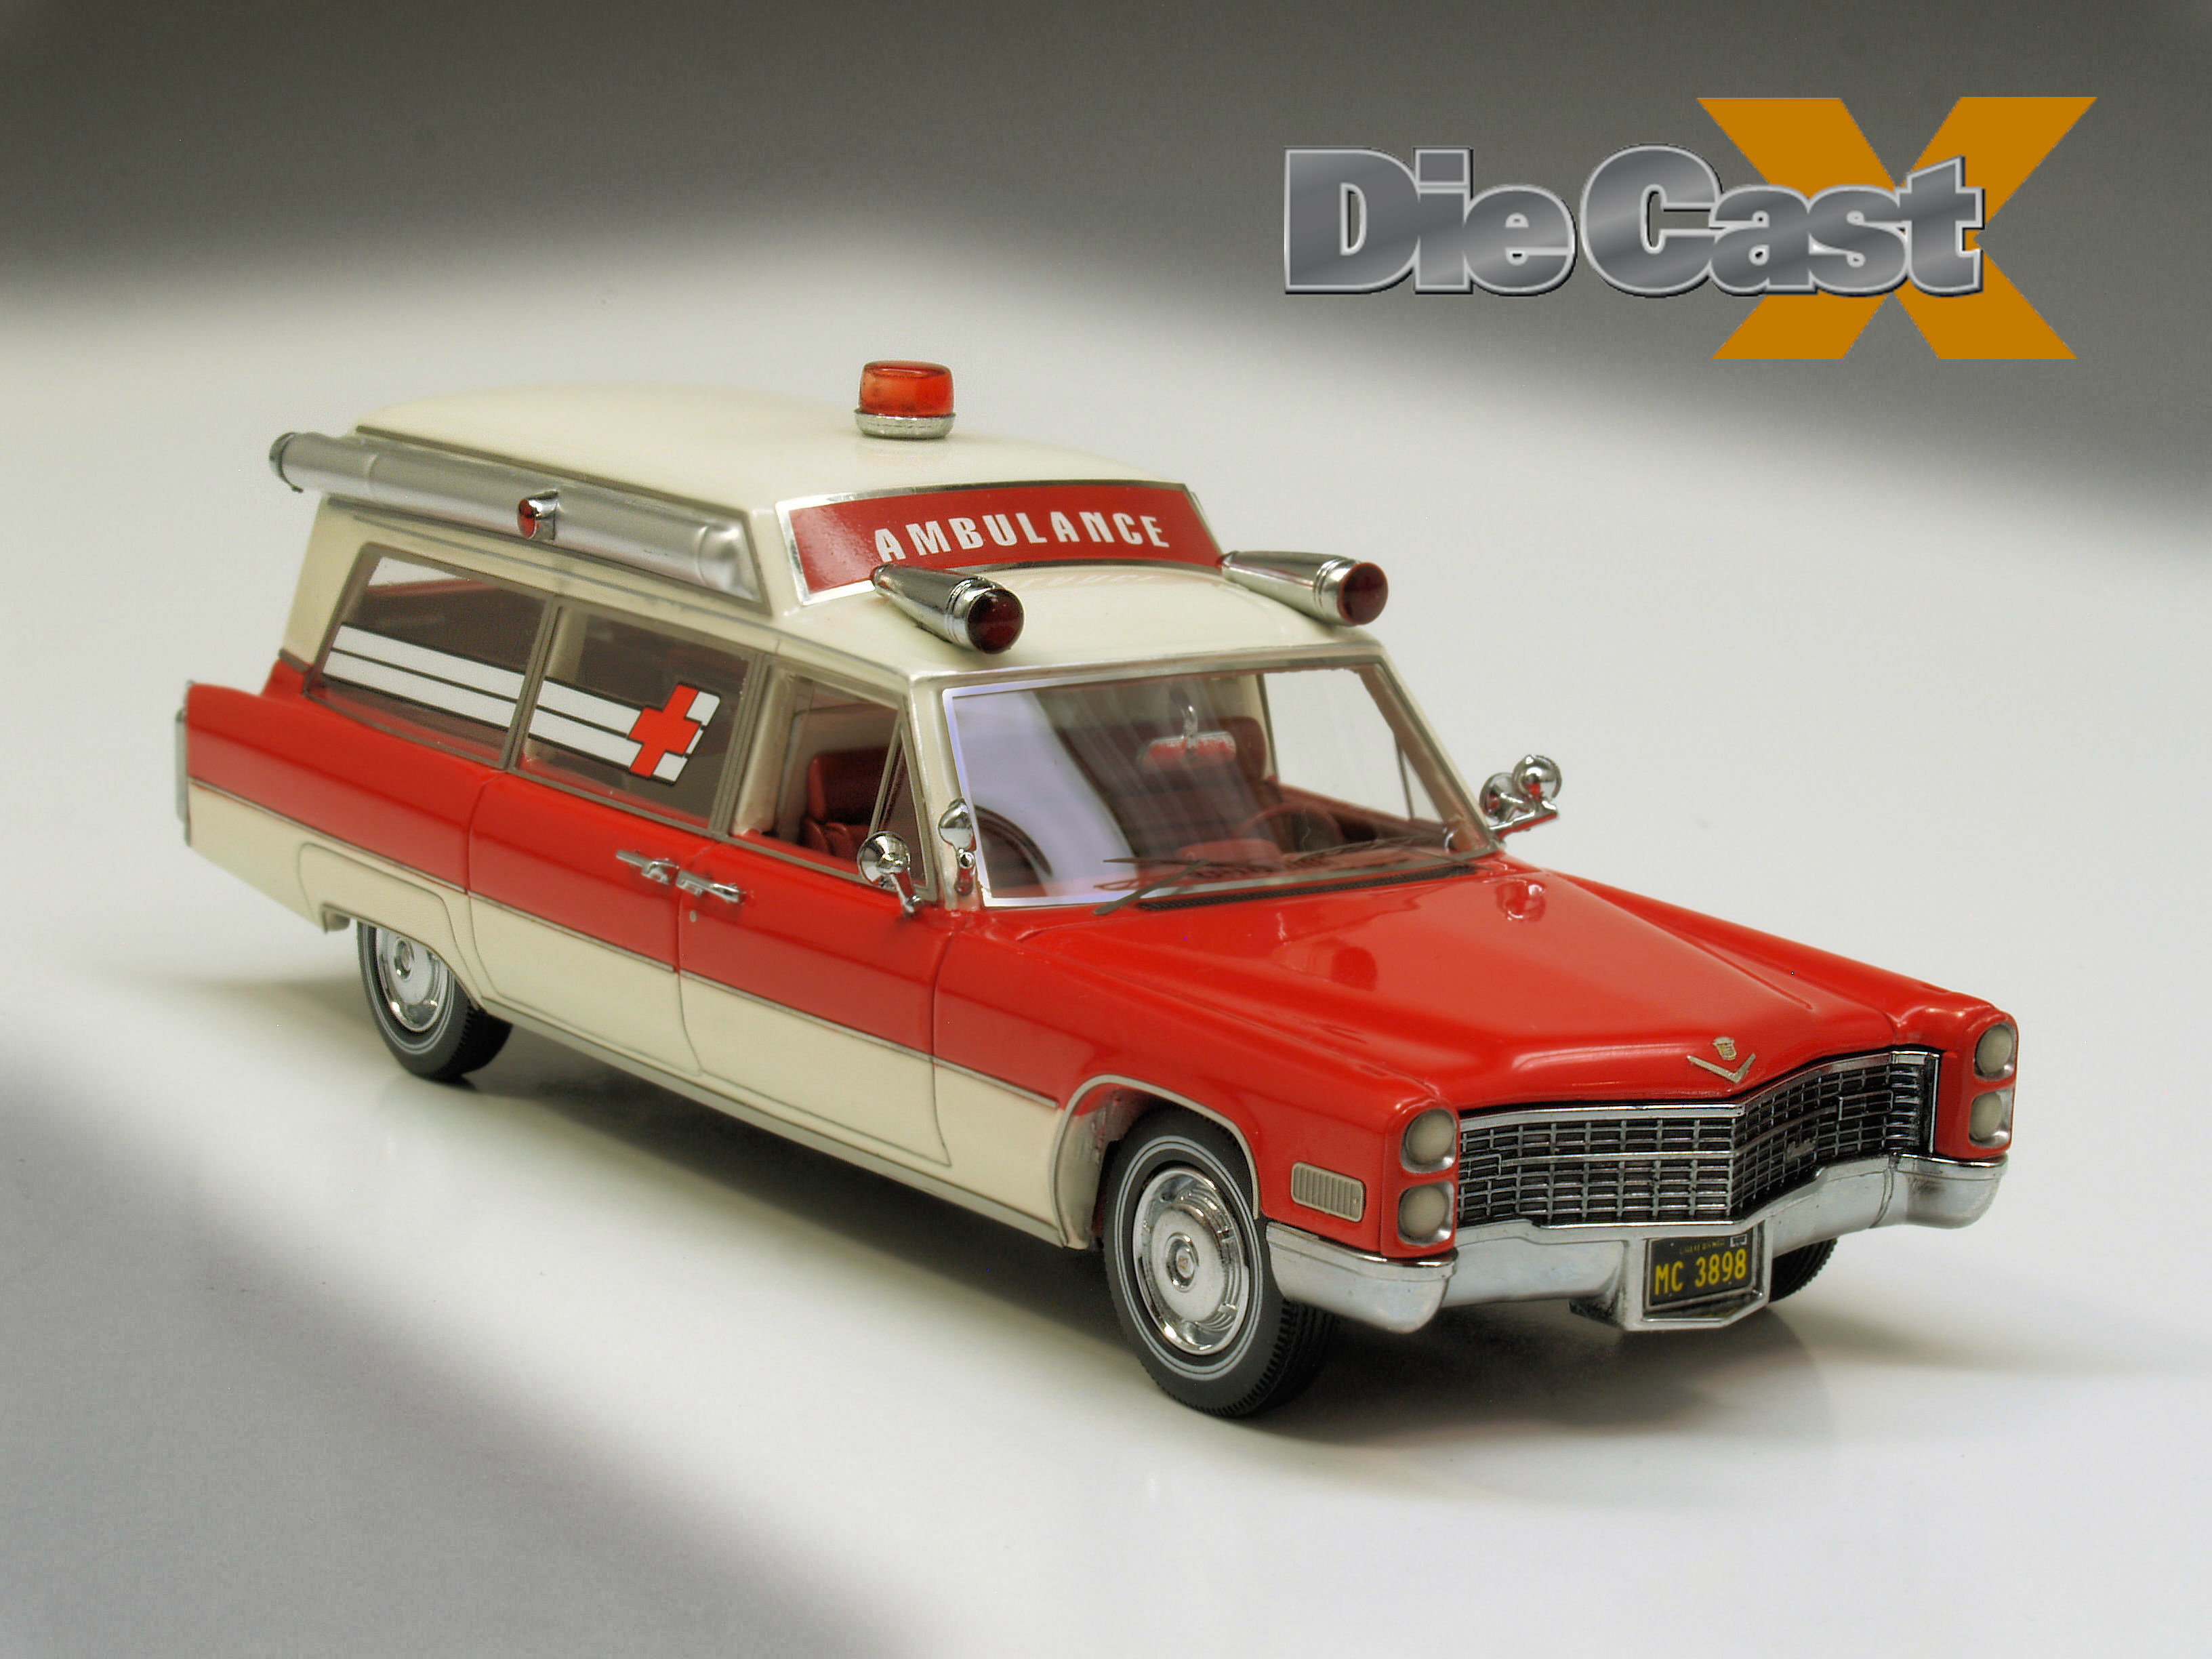 NEO/American Excellence 1:43 1966 Cadillac Ambulance: Siren Song